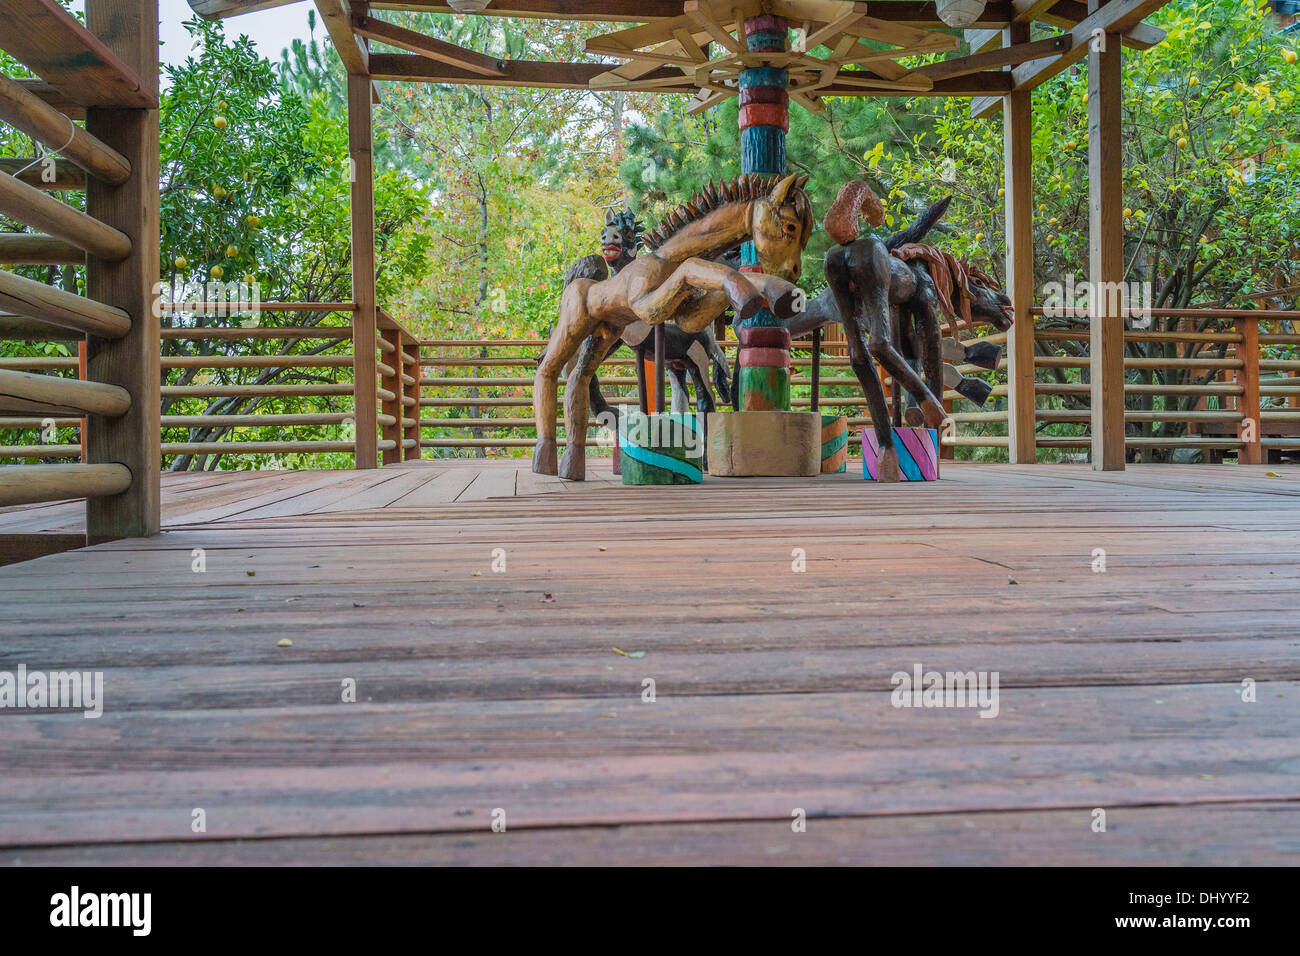 Wooden hand-made carousel by artist Mary Ann Voorhis, in the 'Maloof Collection' at the home and shop of woodworker Sam Maloof. - Stock Image